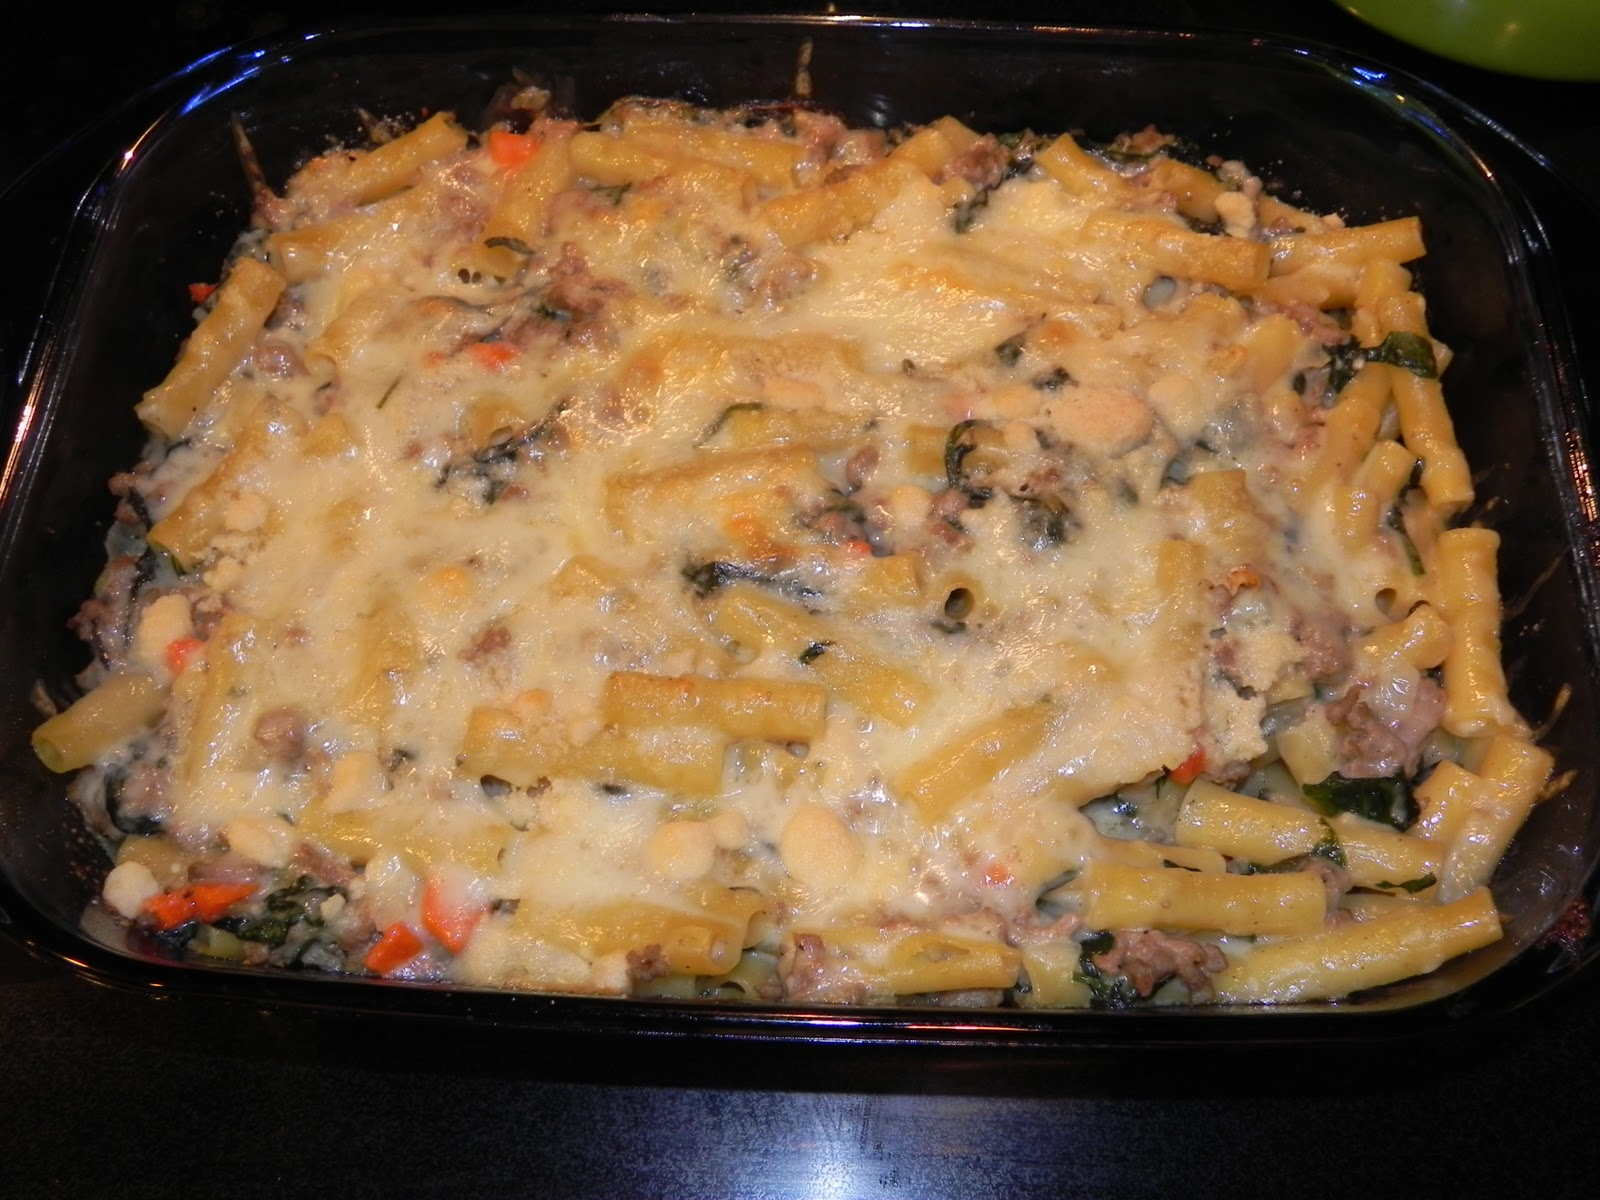 Farrah's Food Adventures: Baked Ziti with Spinach and Turkey